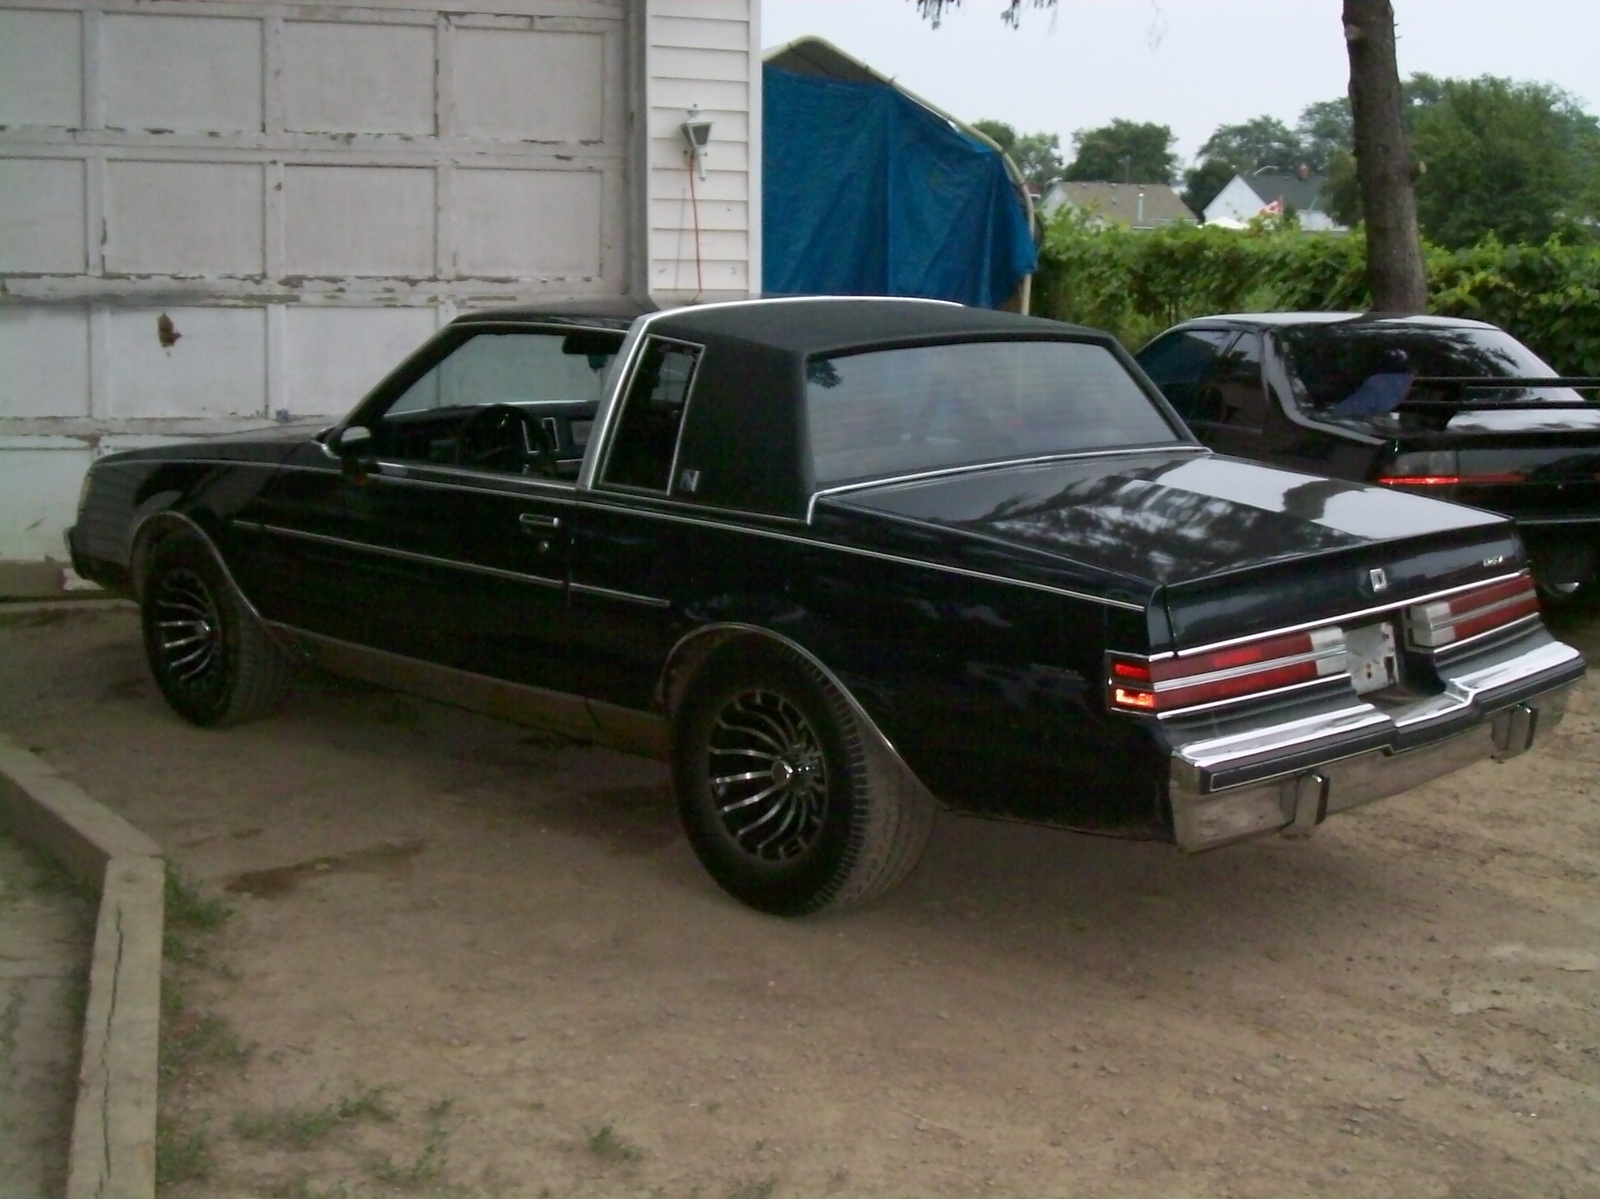 Picture of 1987 Buick Regal 2-Door Coupe  exteriorBuick Regal